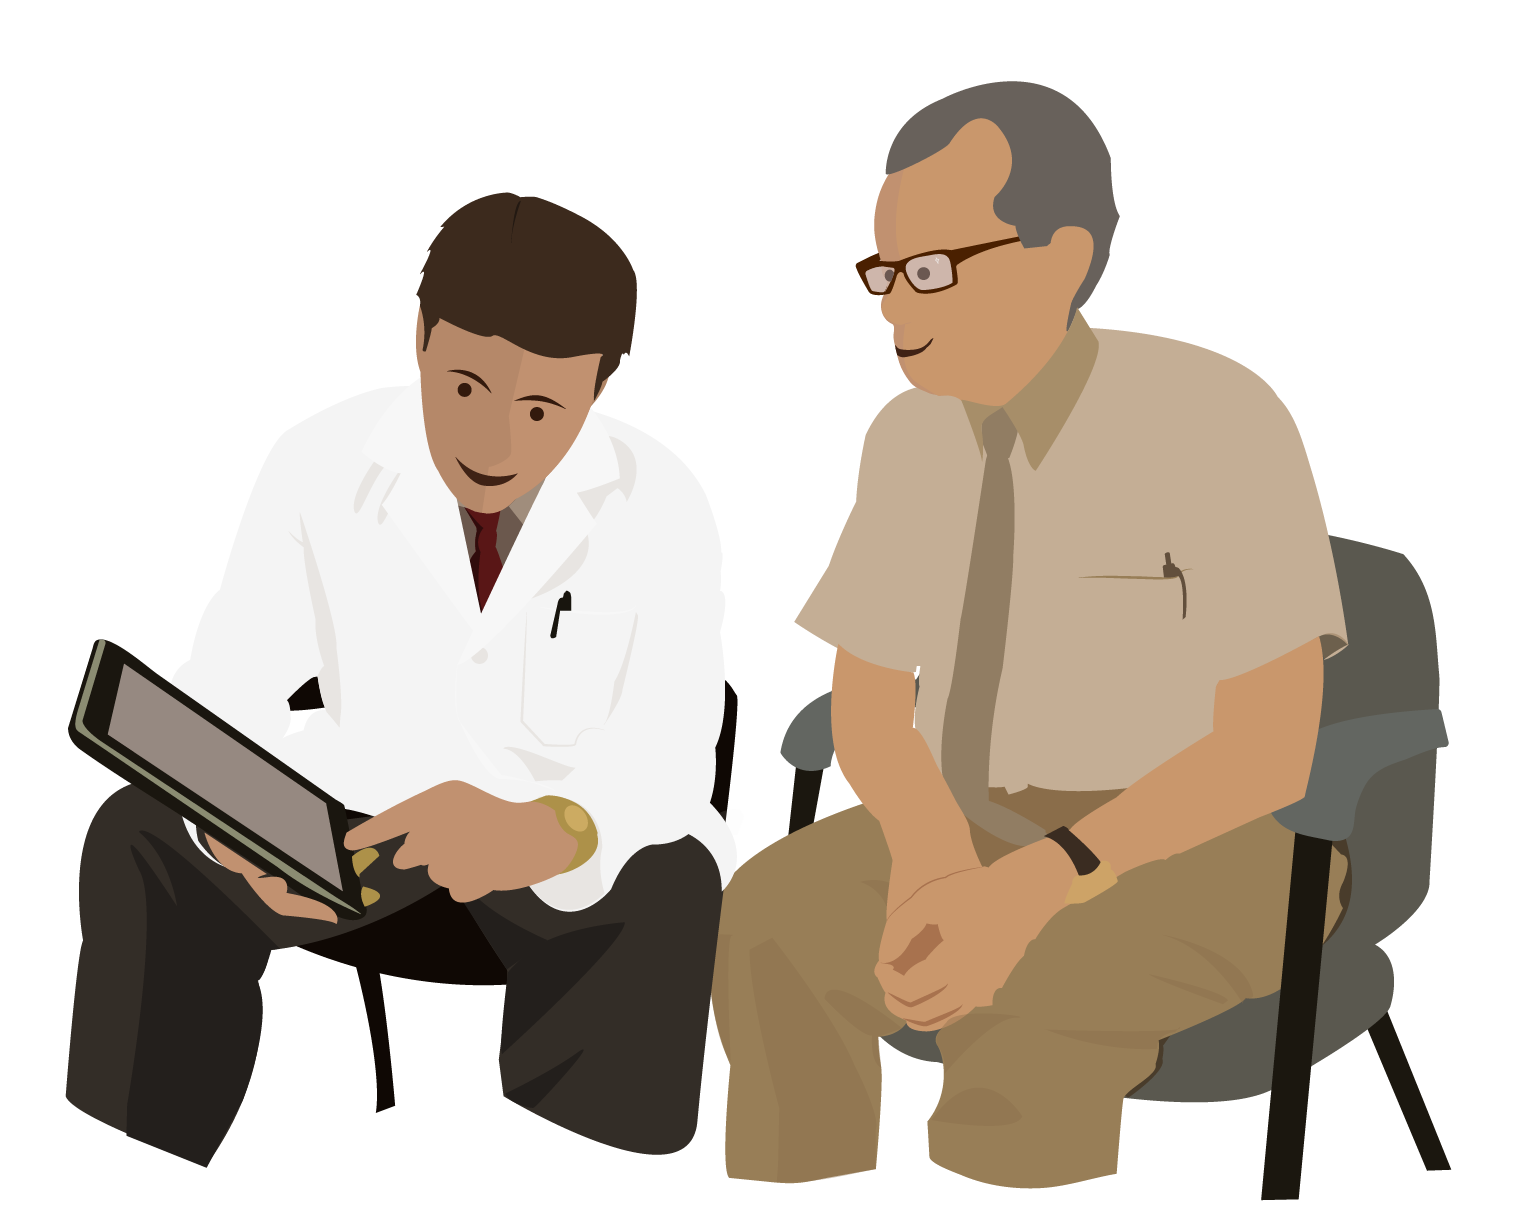 Register clipart patient information. Drawmd education for healthcare